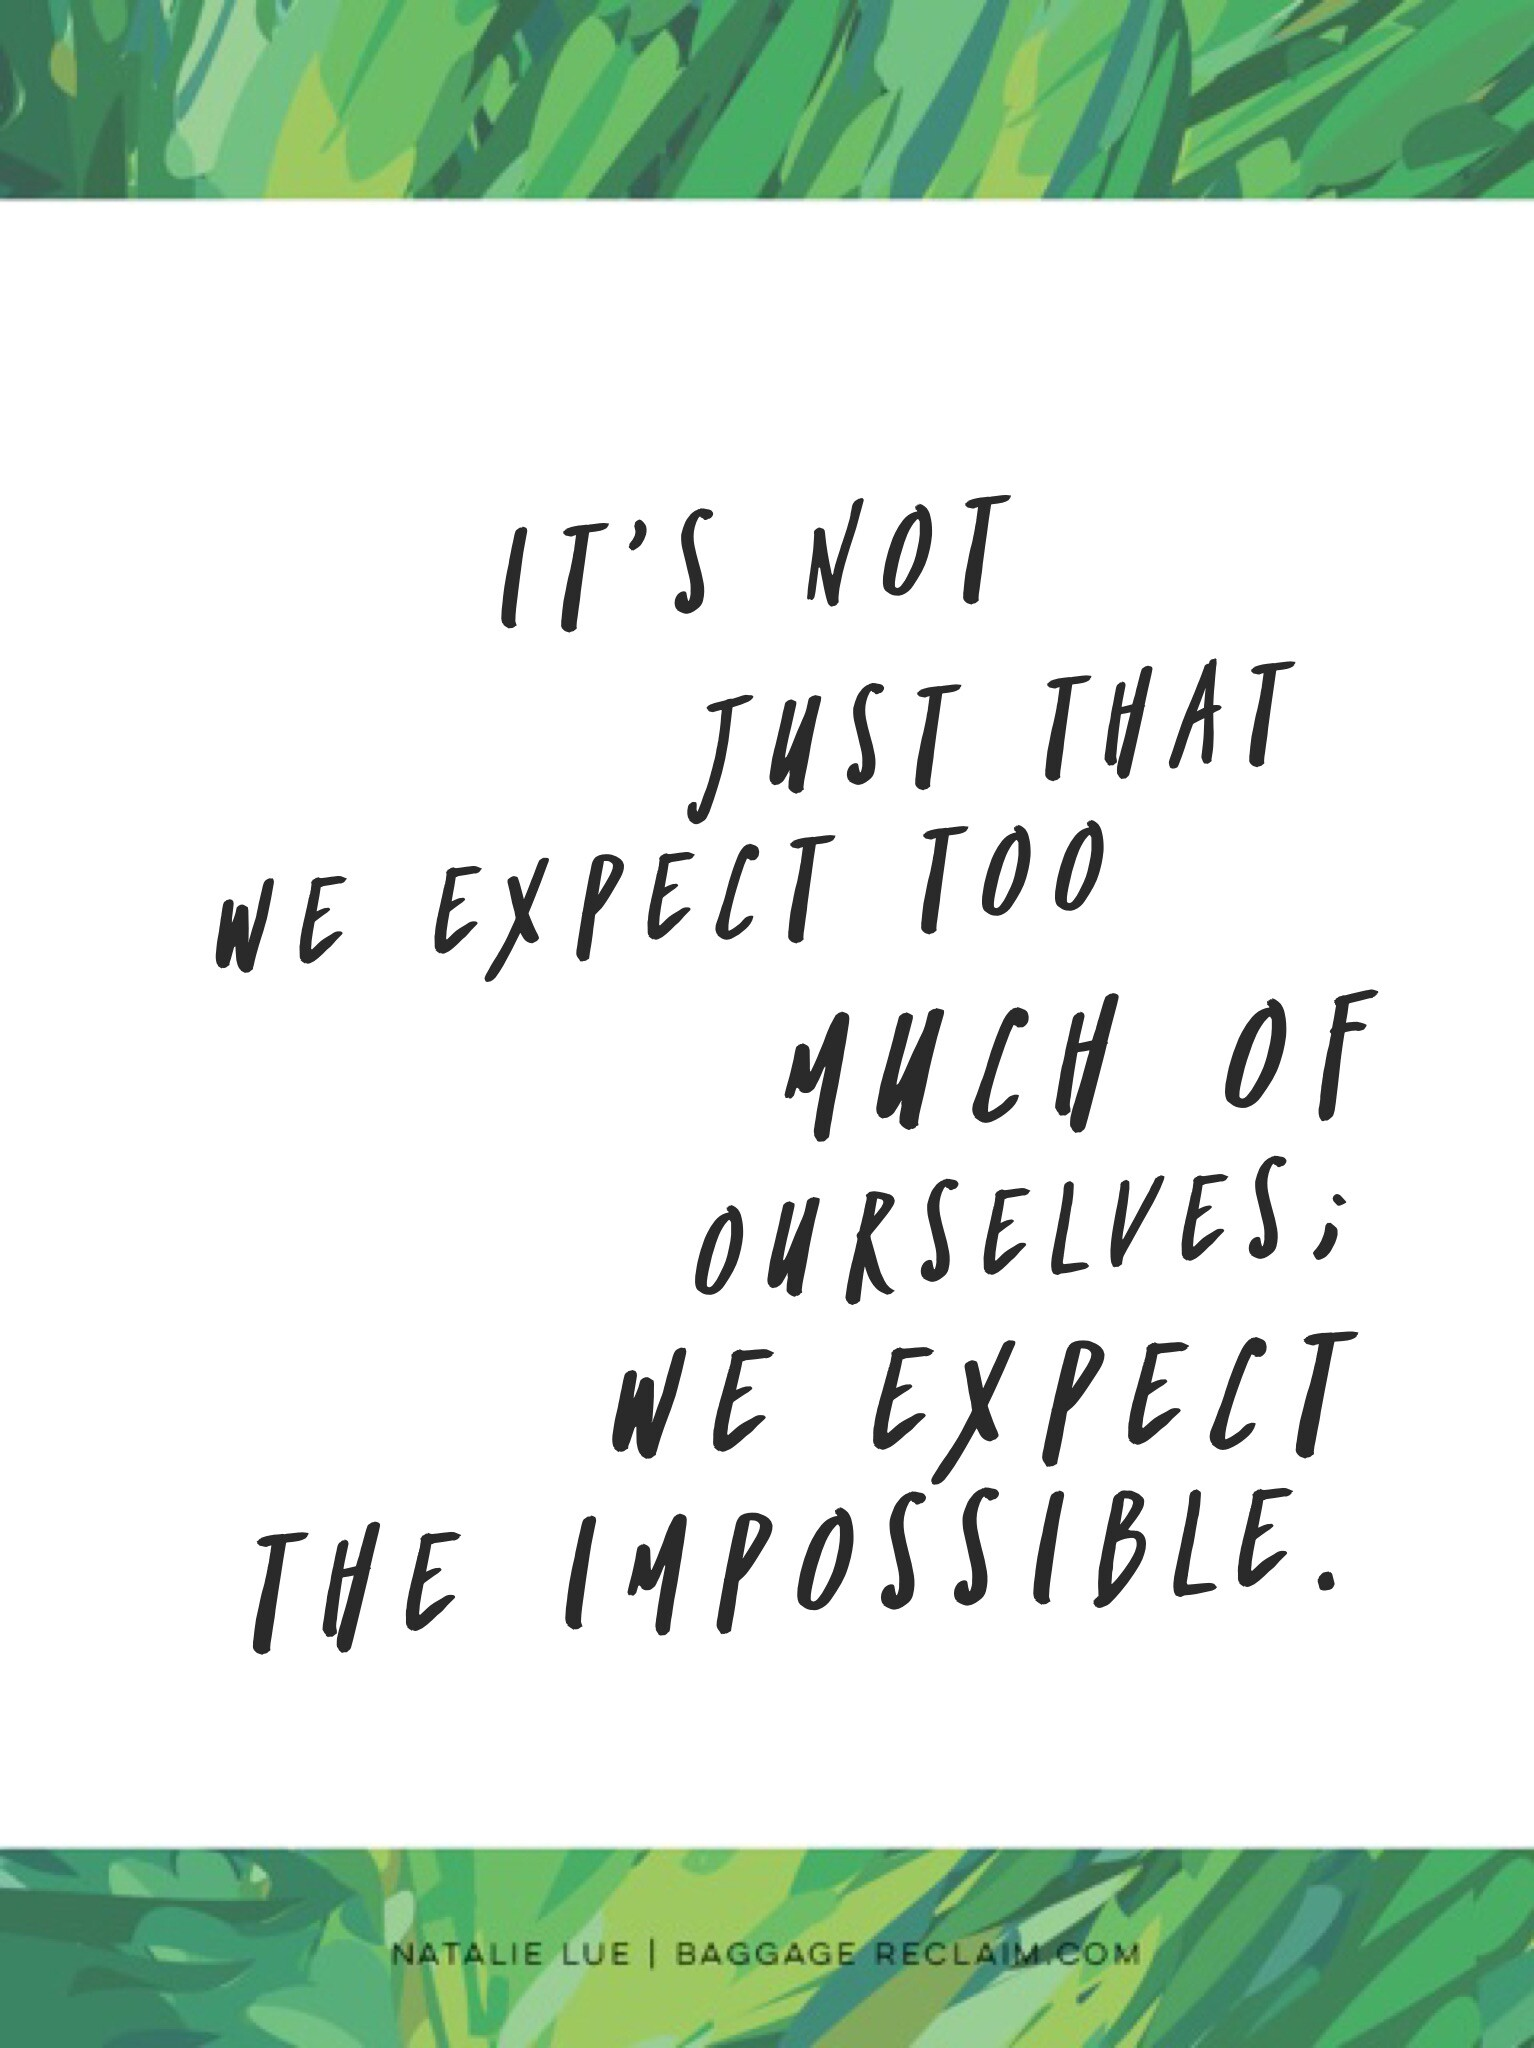 It's not just that we expect too much of ourselves; we expect the impossible.